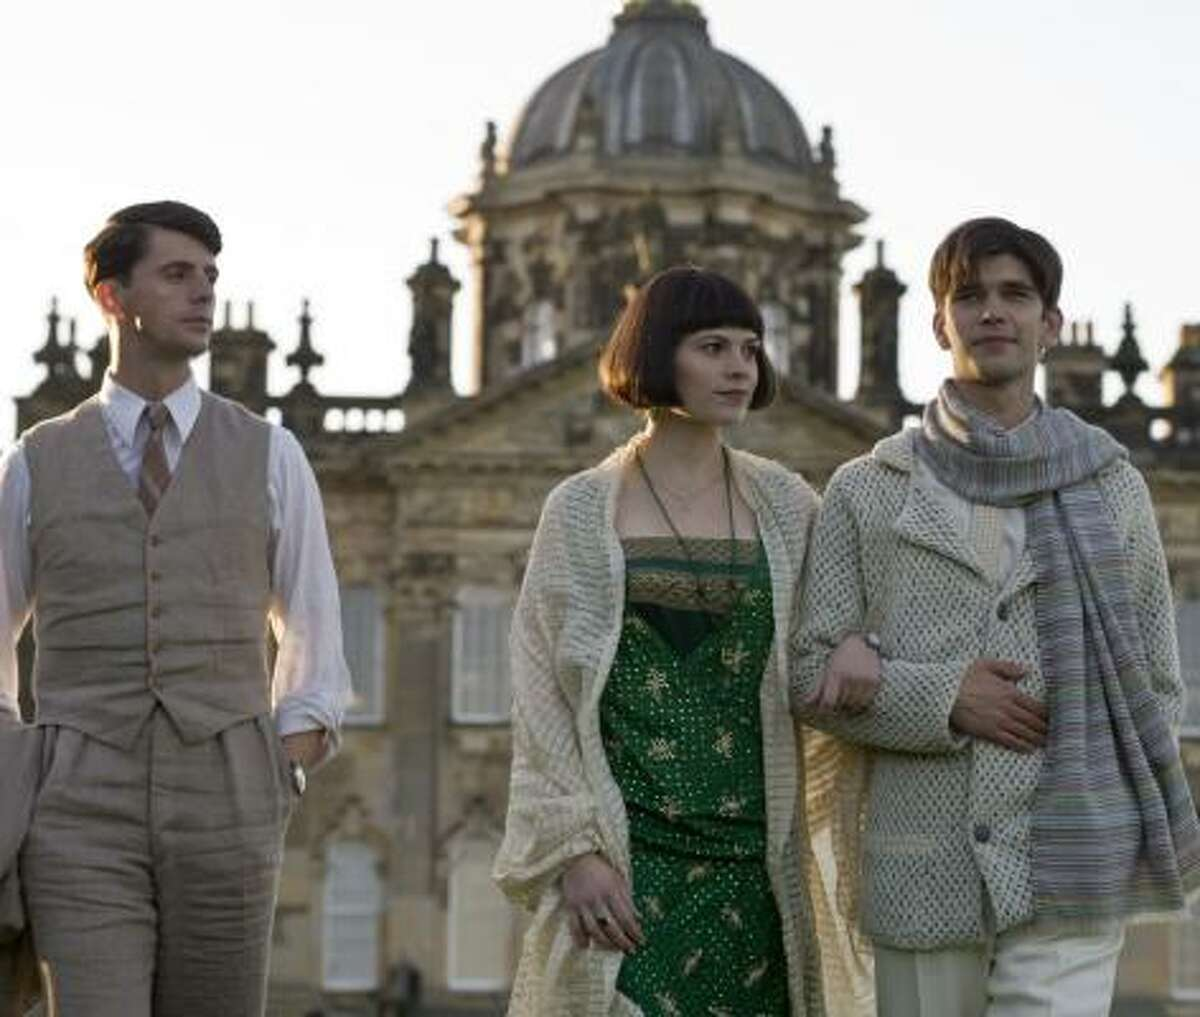 In Brideshead Revisited, Charles Ryder (Matthew Goode, left) forms friendships with Julia Flyte (Hayley Atwell) and Sebastian Flyte (Ben Whishaw).